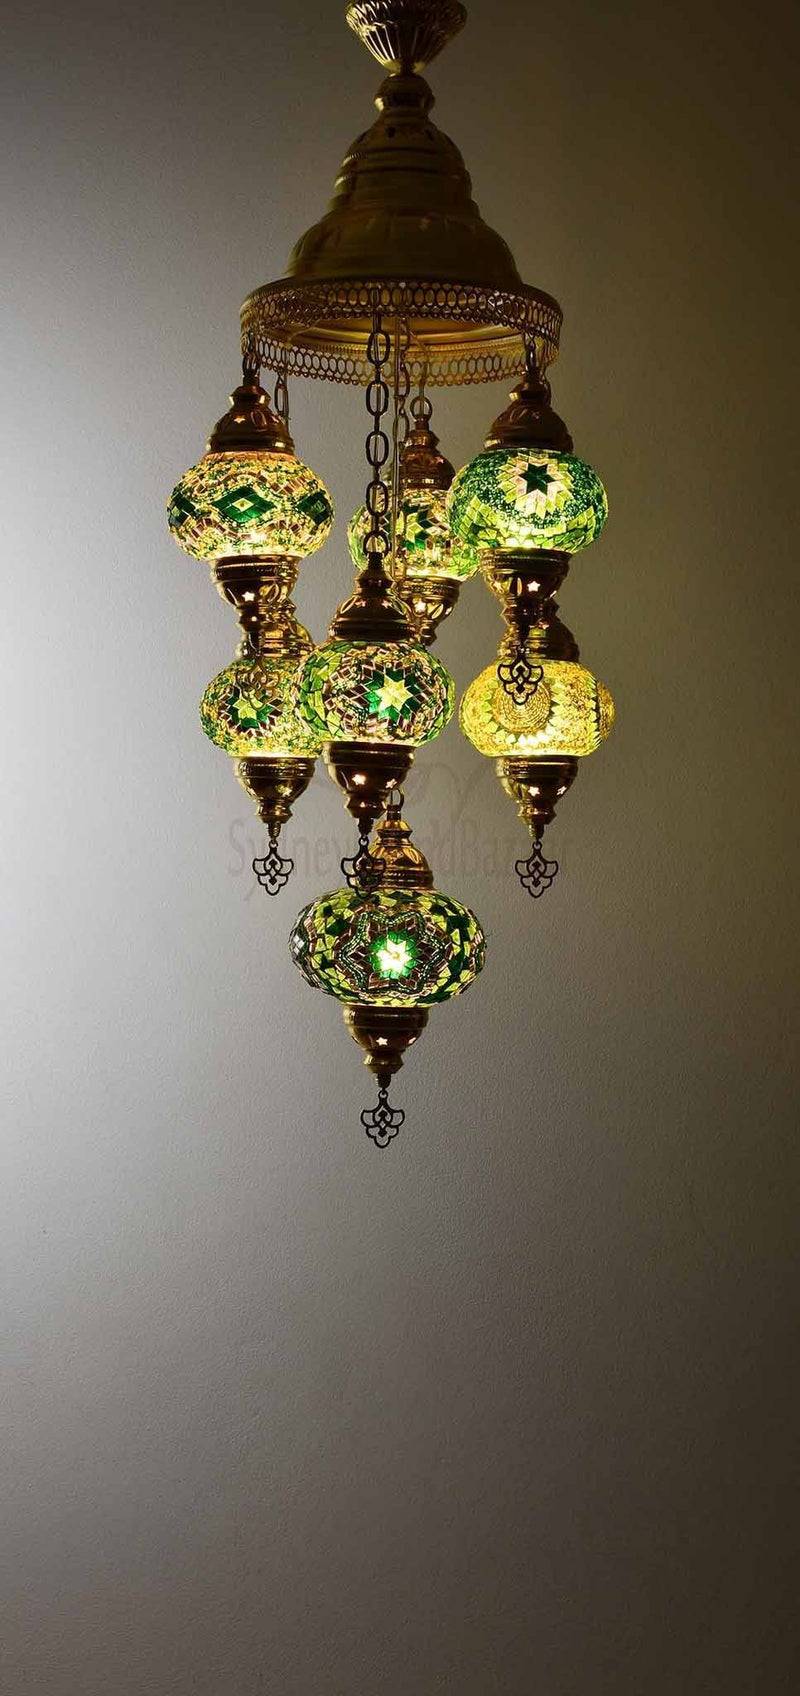 Turkish Mosaic Pendant Light 7 Globes in Gold Lighting Sydney Grand Bazaar Green